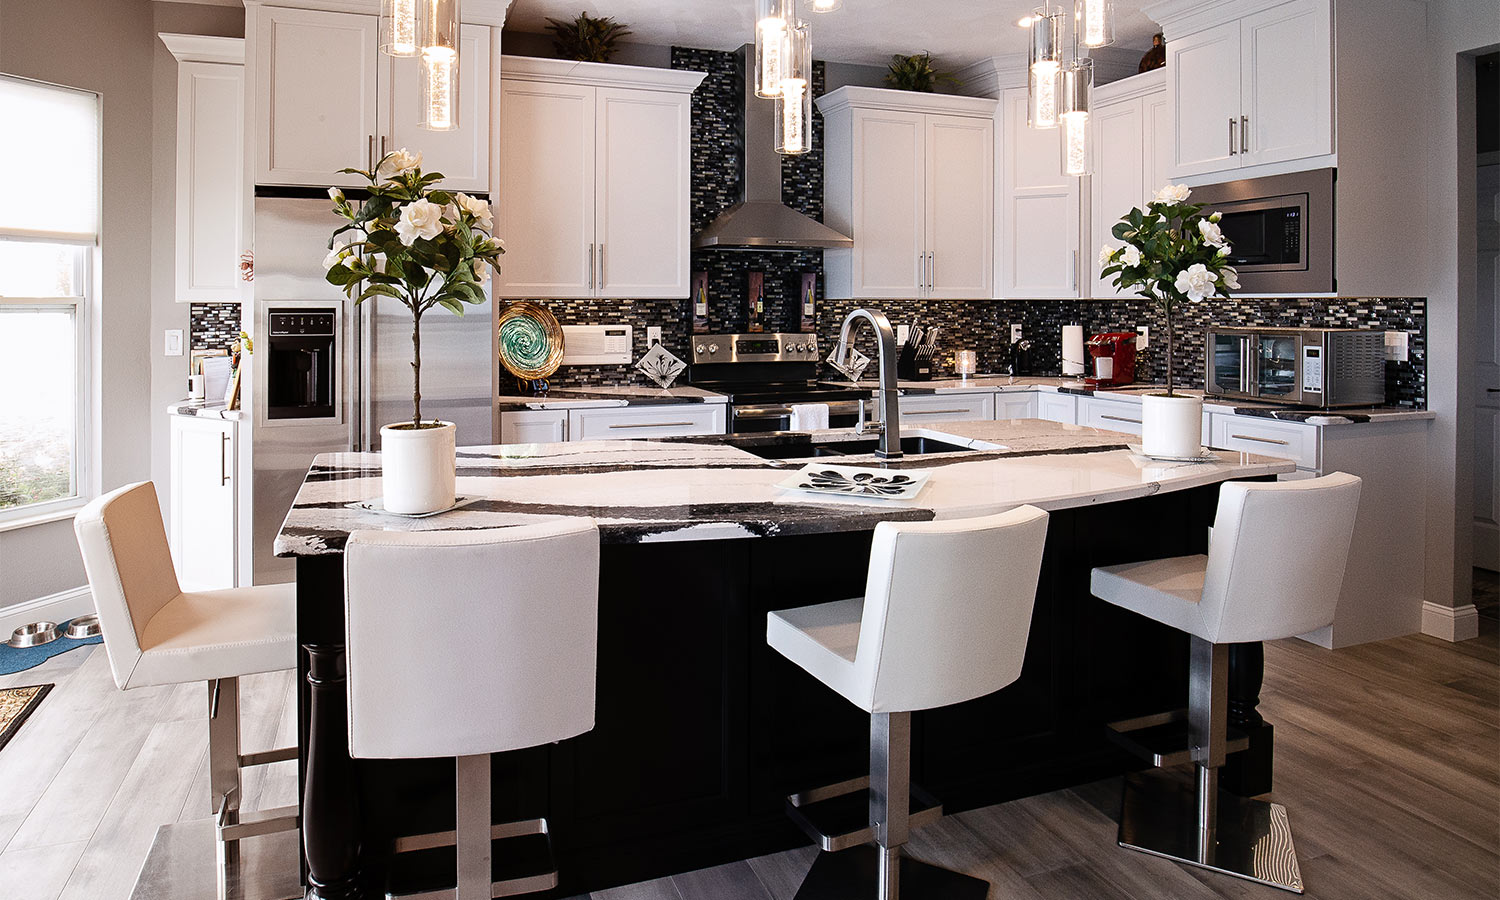 Kitchen Cabinets | Studio 11 Cabinets & Design